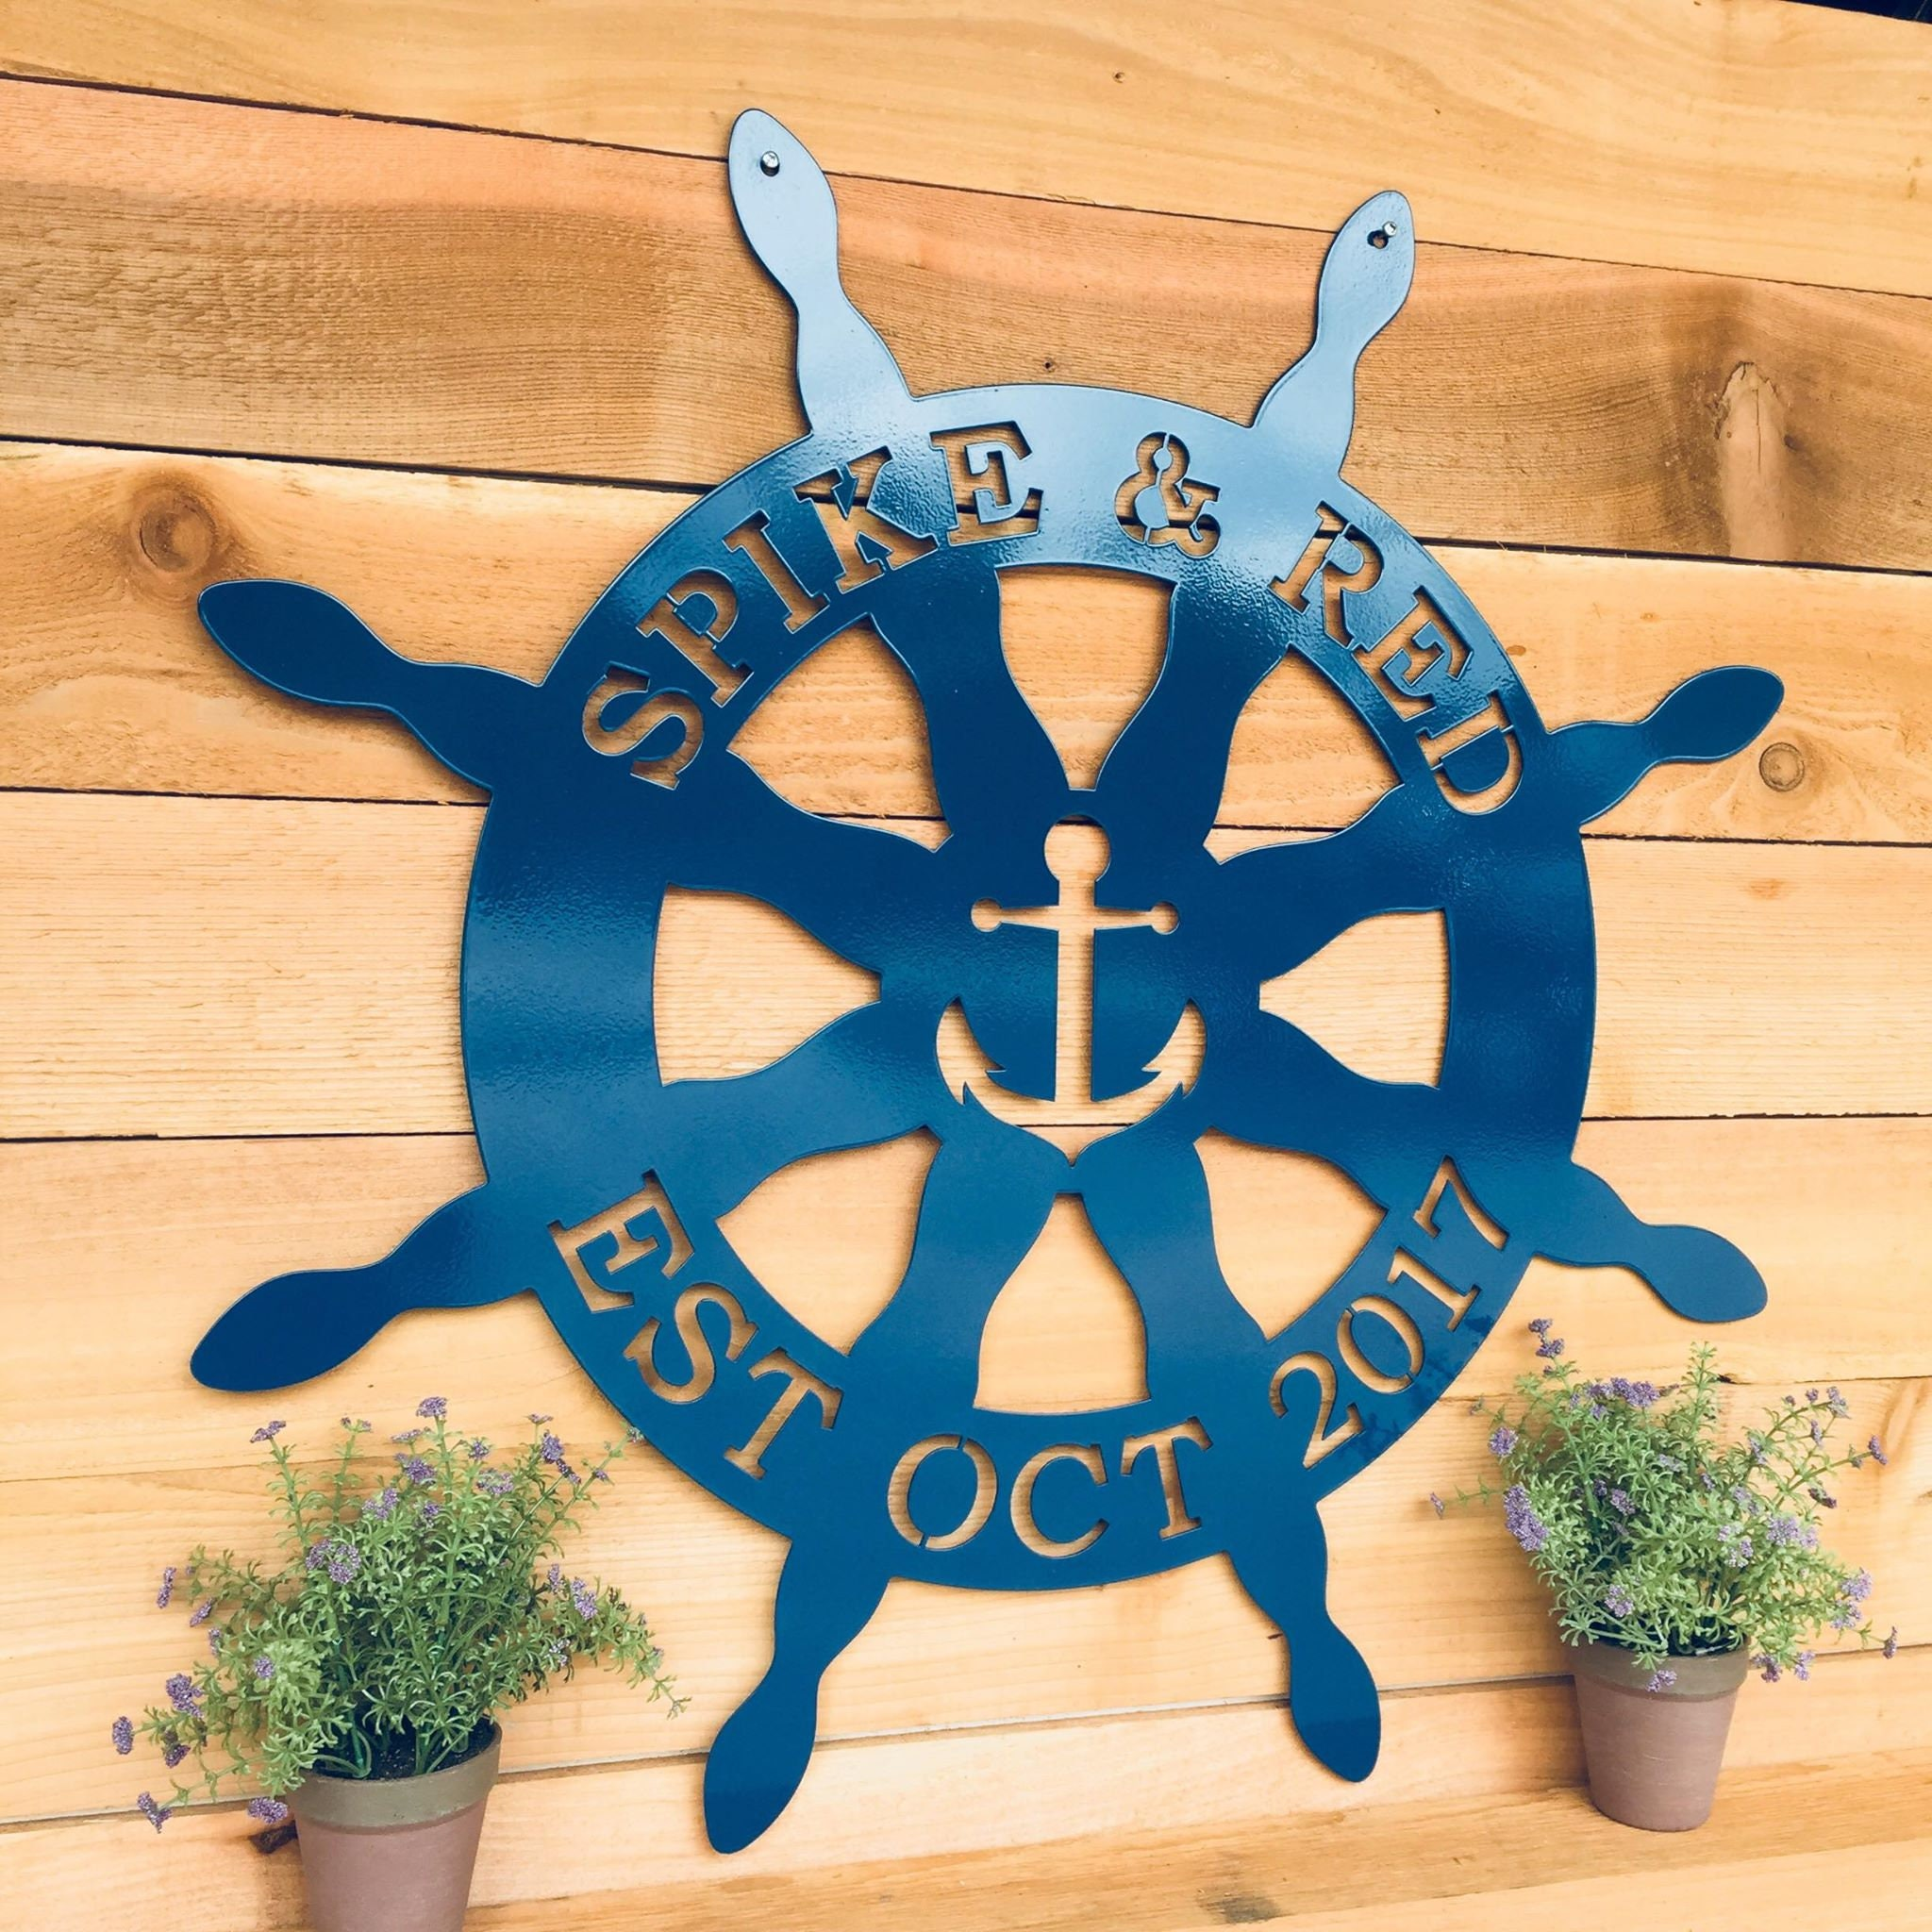 Captainu0027s Wheel Outdoor Metal Front Door Sign, Weatherproof Front Porch  Wreath For Beach, Vacation Home Lake House Sign, Nautical Decor